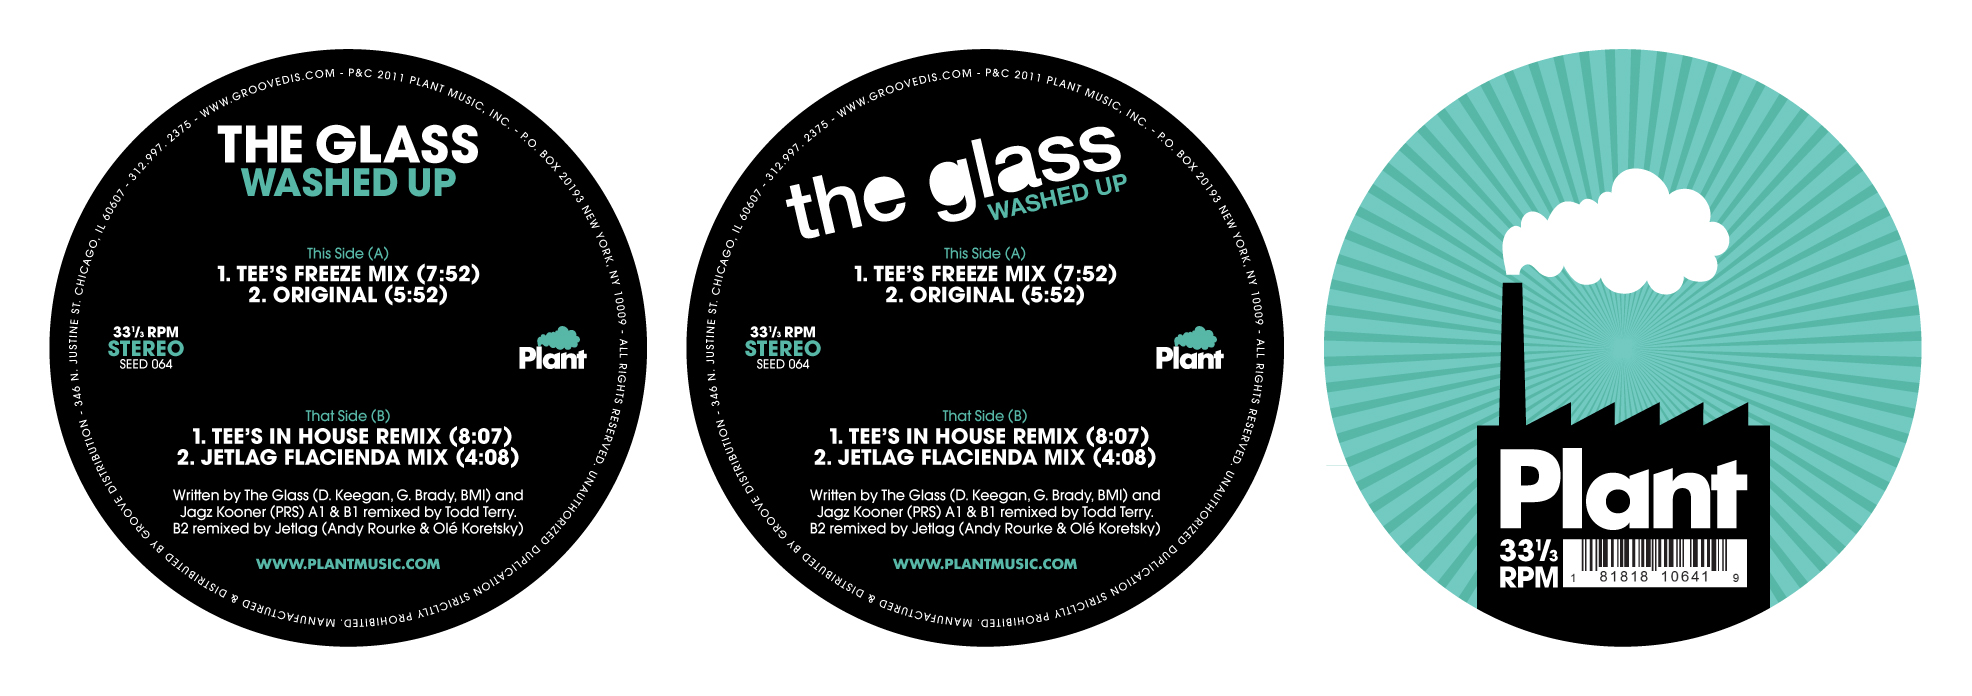 Glass, The/WASHED UP EP 12""